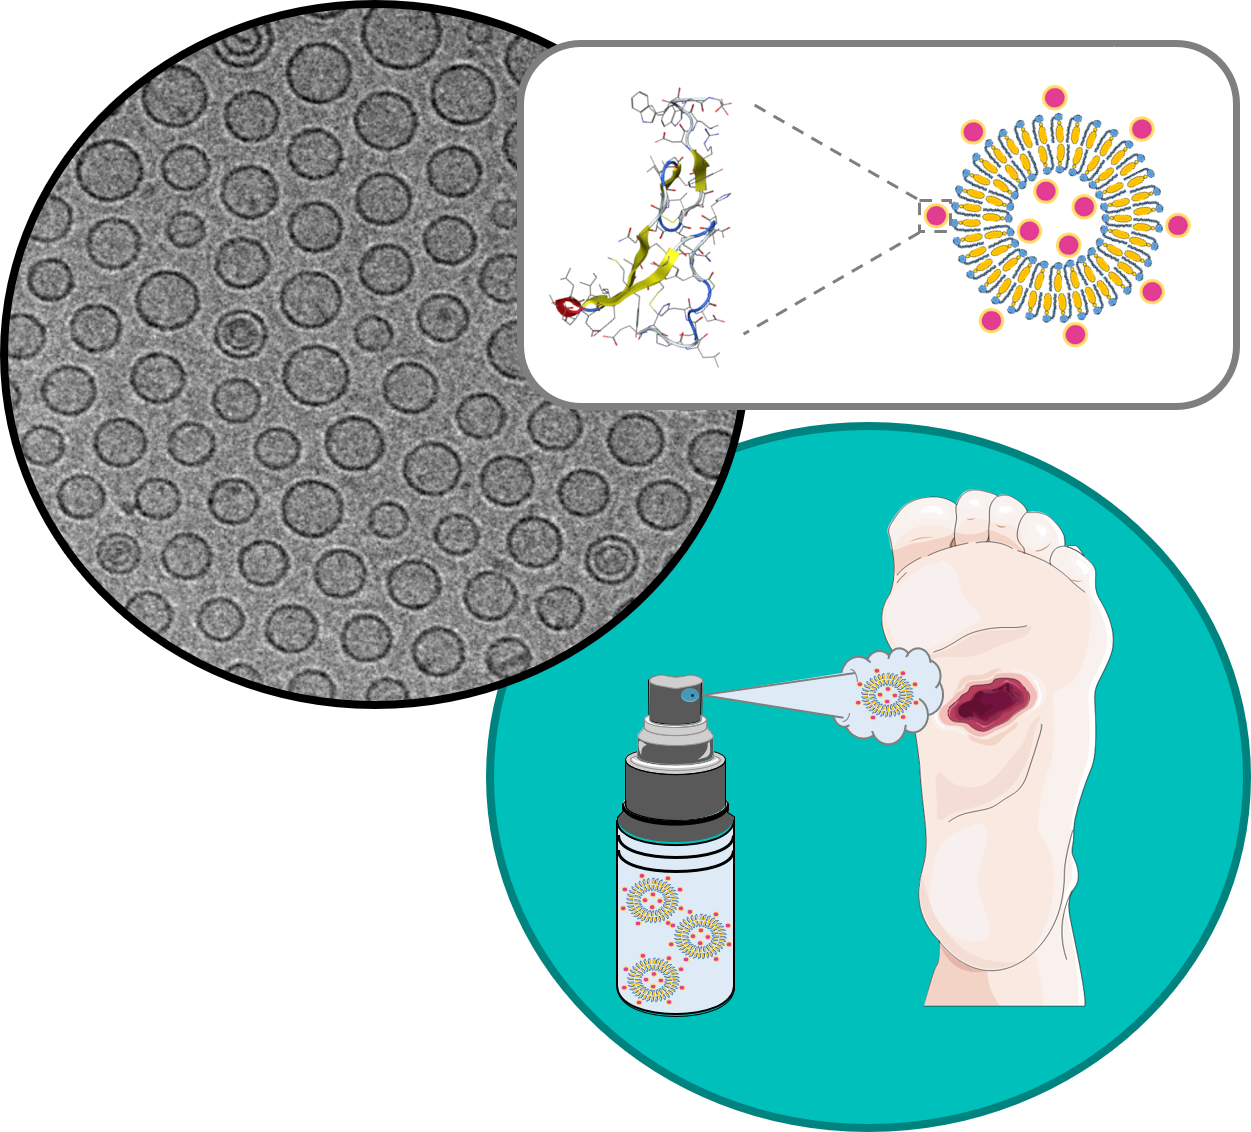 NEW DELOS NANOMEDICINE FOR THE TOPICAL TREATMENT OF COMPLEX WOUNDS